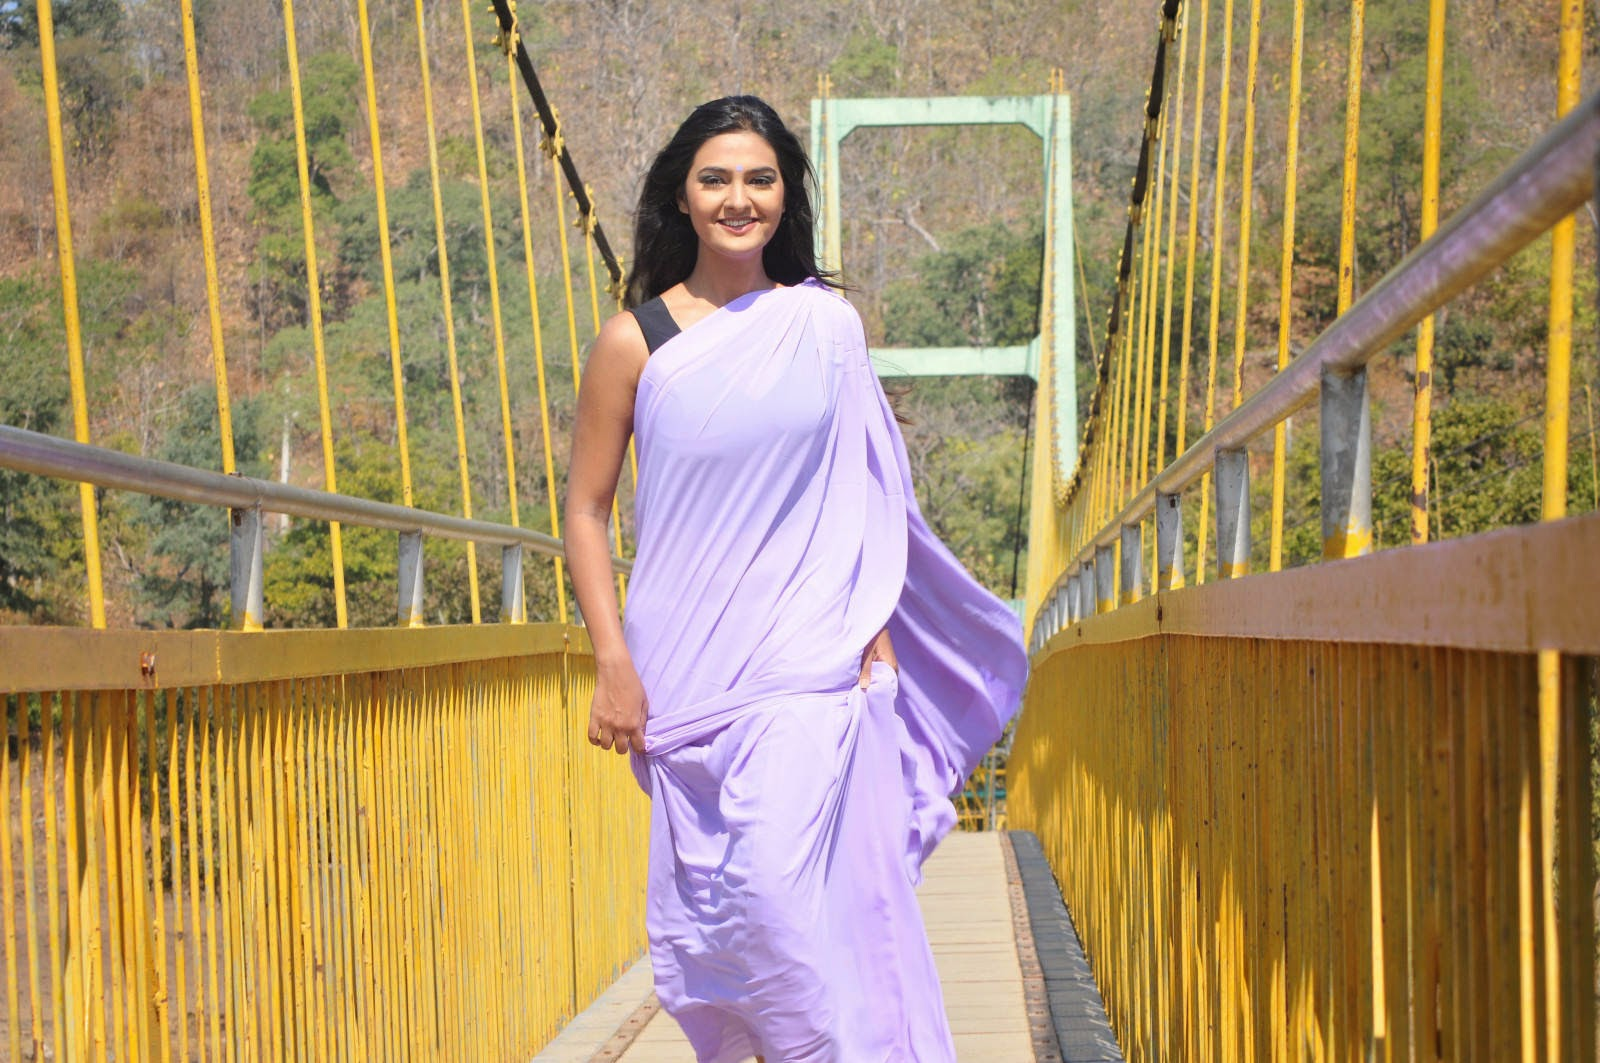 Neha Deshpande Stills in Violet Saree From The Bells Movie, Neha Deshpande Sare HD Wallpapers from The Bells Movie